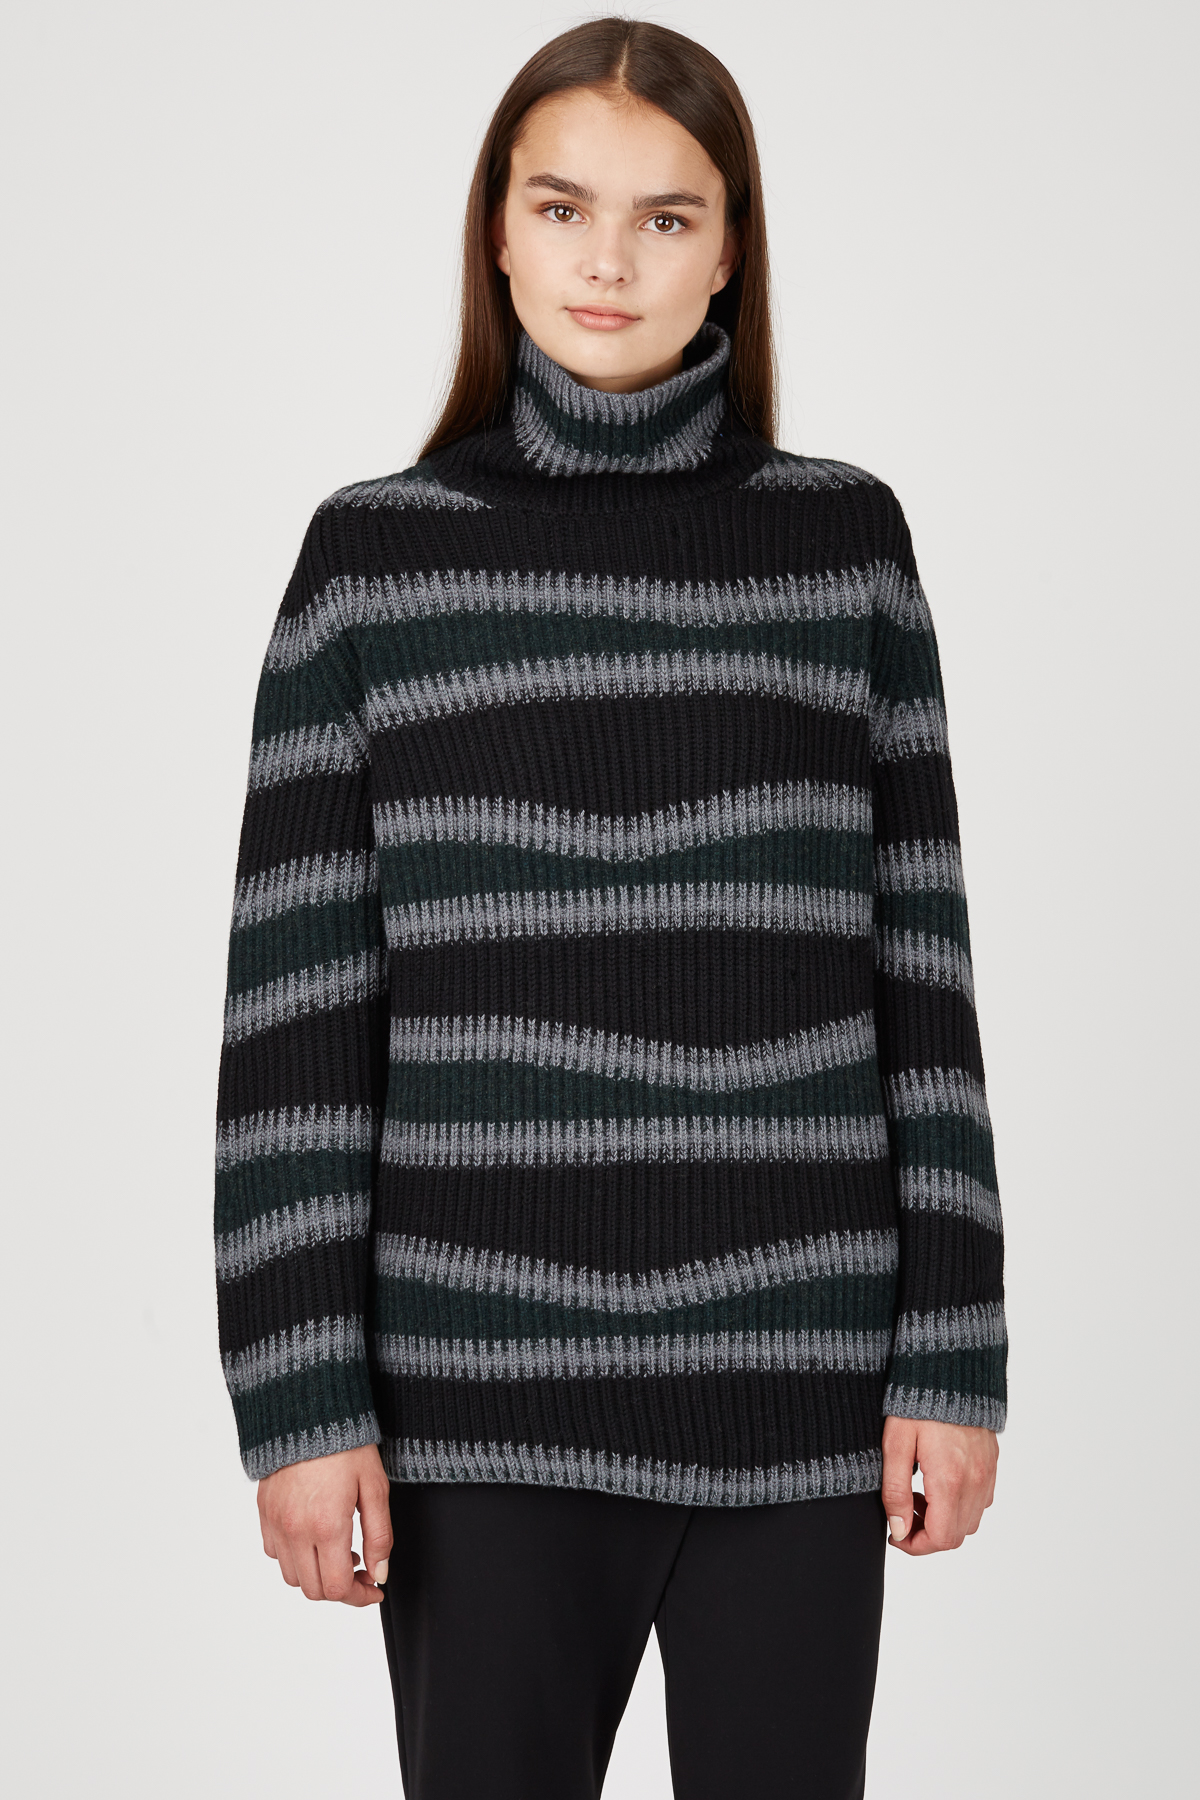 kenzo abstract striped wool sweater women sale kenzo opening ceremony. Black Bedroom Furniture Sets. Home Design Ideas